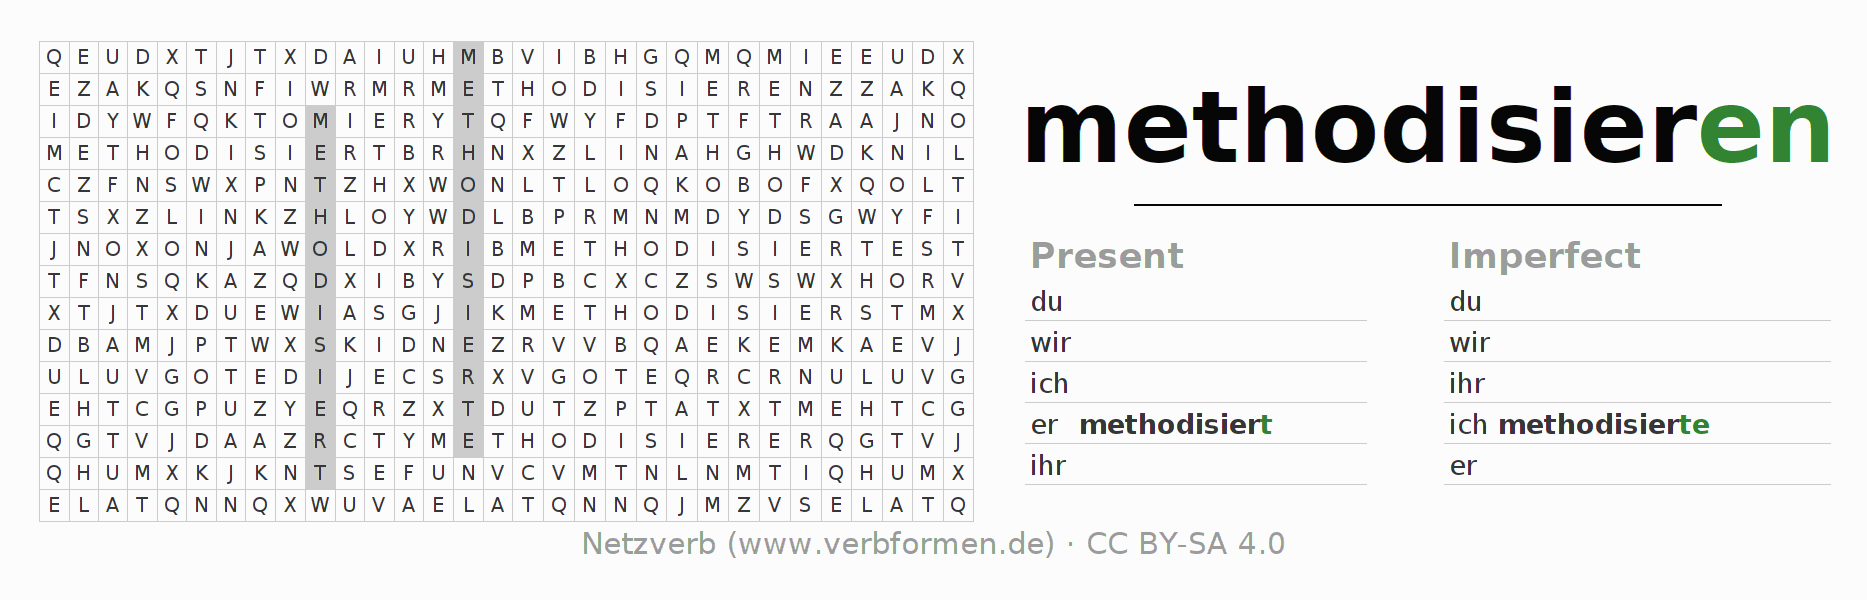 Word search puzzle for the conjugation of the verb methodisieren